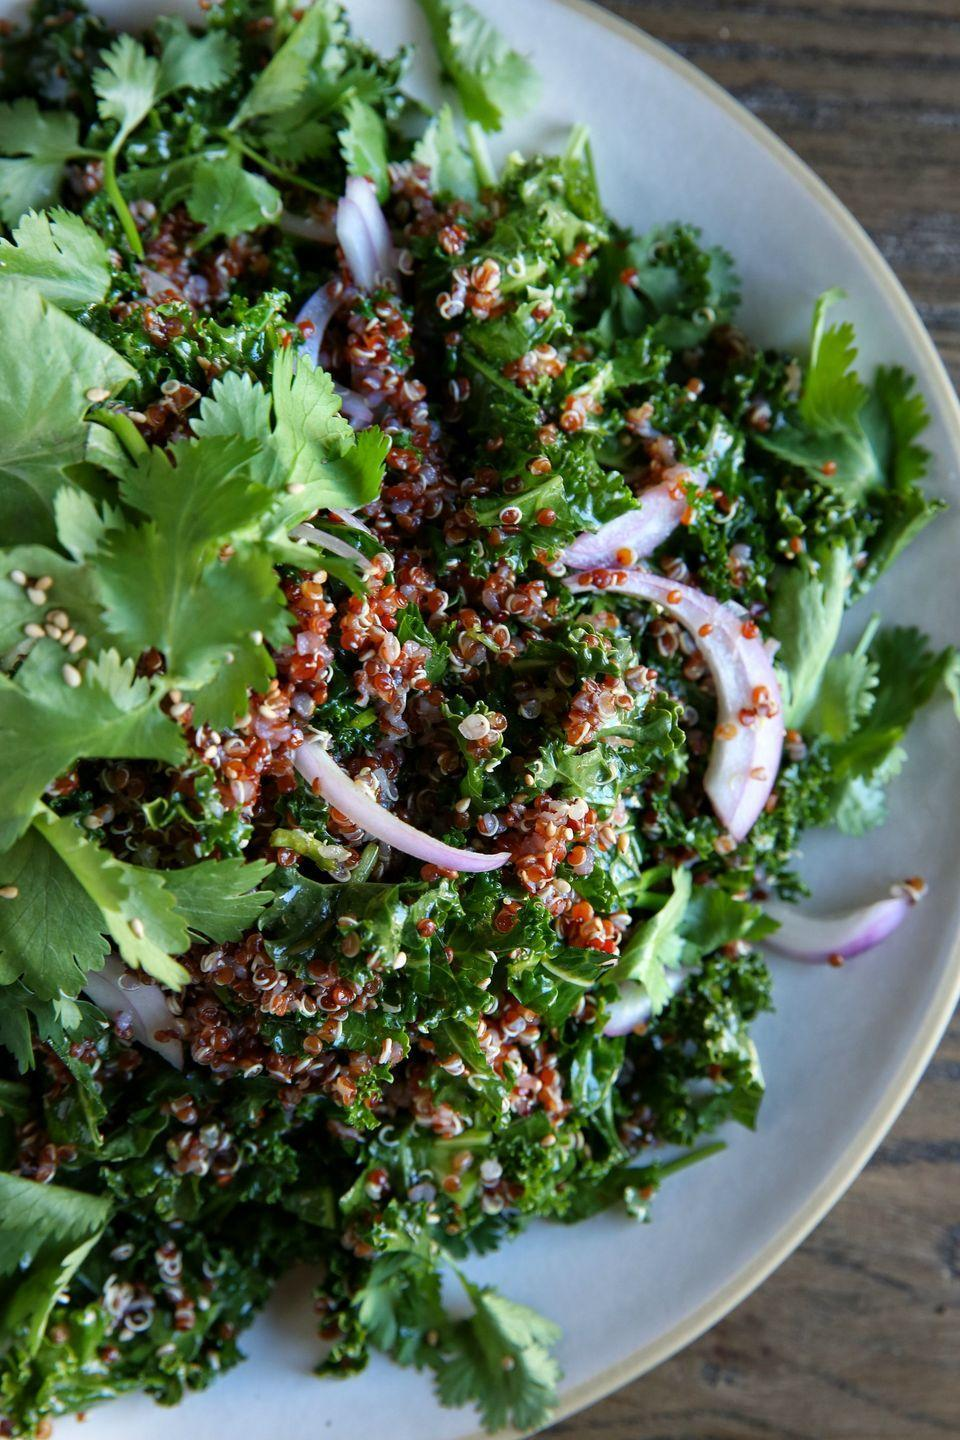 """<p>The addictive dressing on this salad is about to become one of your mainstays.</p><p>Get the recipe from <a href=""""https://www.delish.com/cooking/recipe-ideas/recipes/a46443/kale-and-red-quinoa-salad-with-spicy-sesame-dressing-recipe/"""" rel=""""nofollow noopener"""" target=""""_blank"""" data-ylk=""""slk:Delish"""" class=""""link rapid-noclick-resp"""">Delish</a>.</p>"""